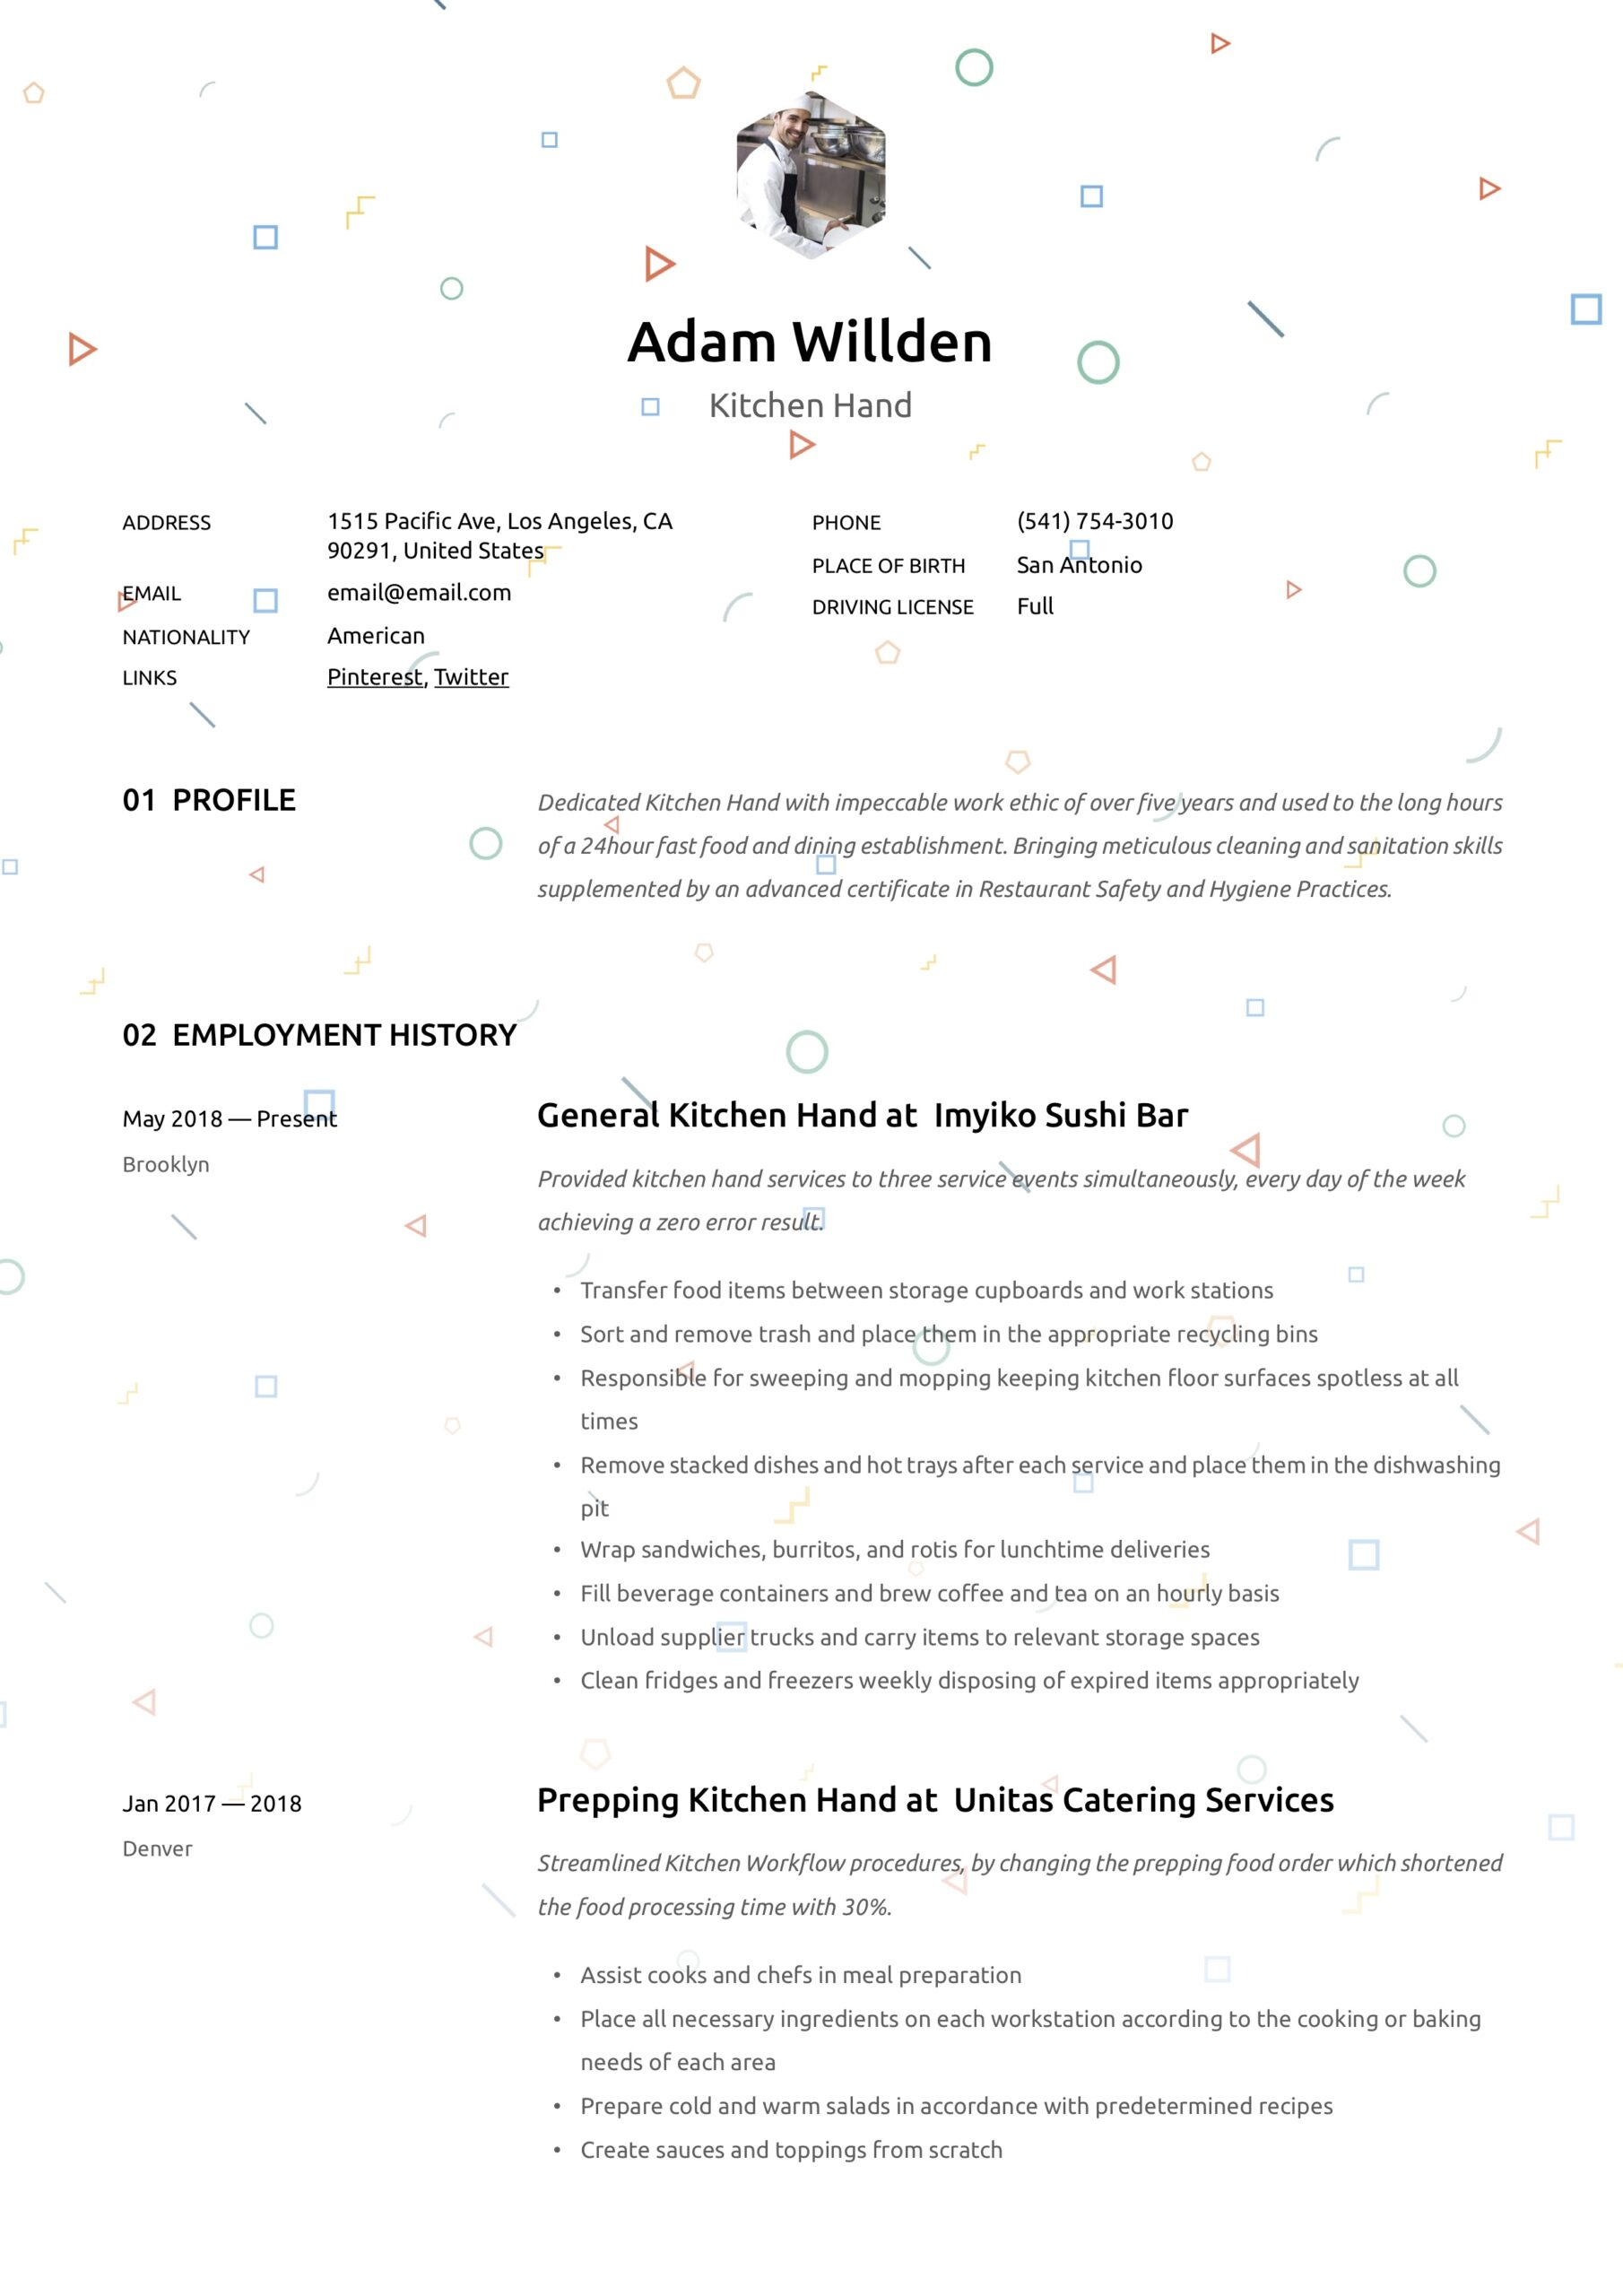 kitchen resume writing guide free templates responsibilities clean examples psg marseille Resume Kitchen Hand Responsibilities Resume